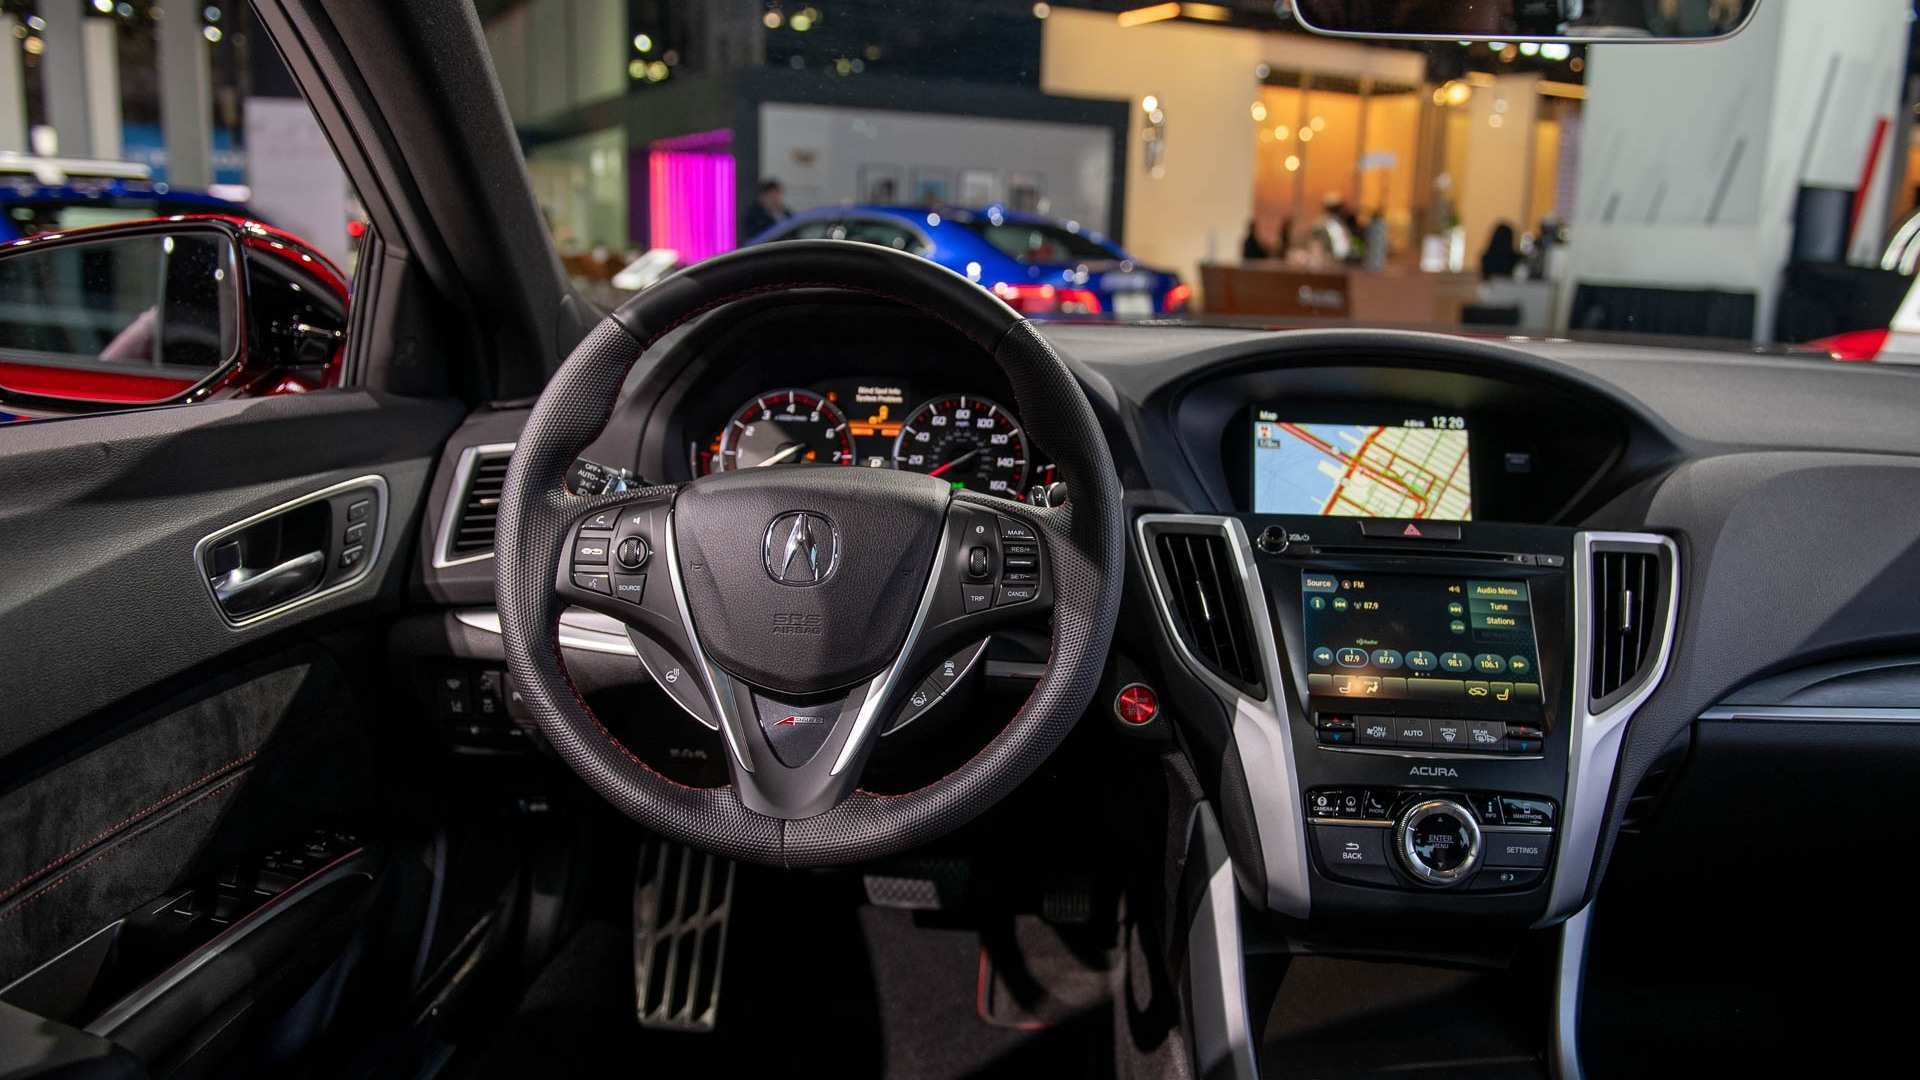 68 Gallery of Acura Tlx 2020 Interior Price with Acura Tlx 2020 Interior